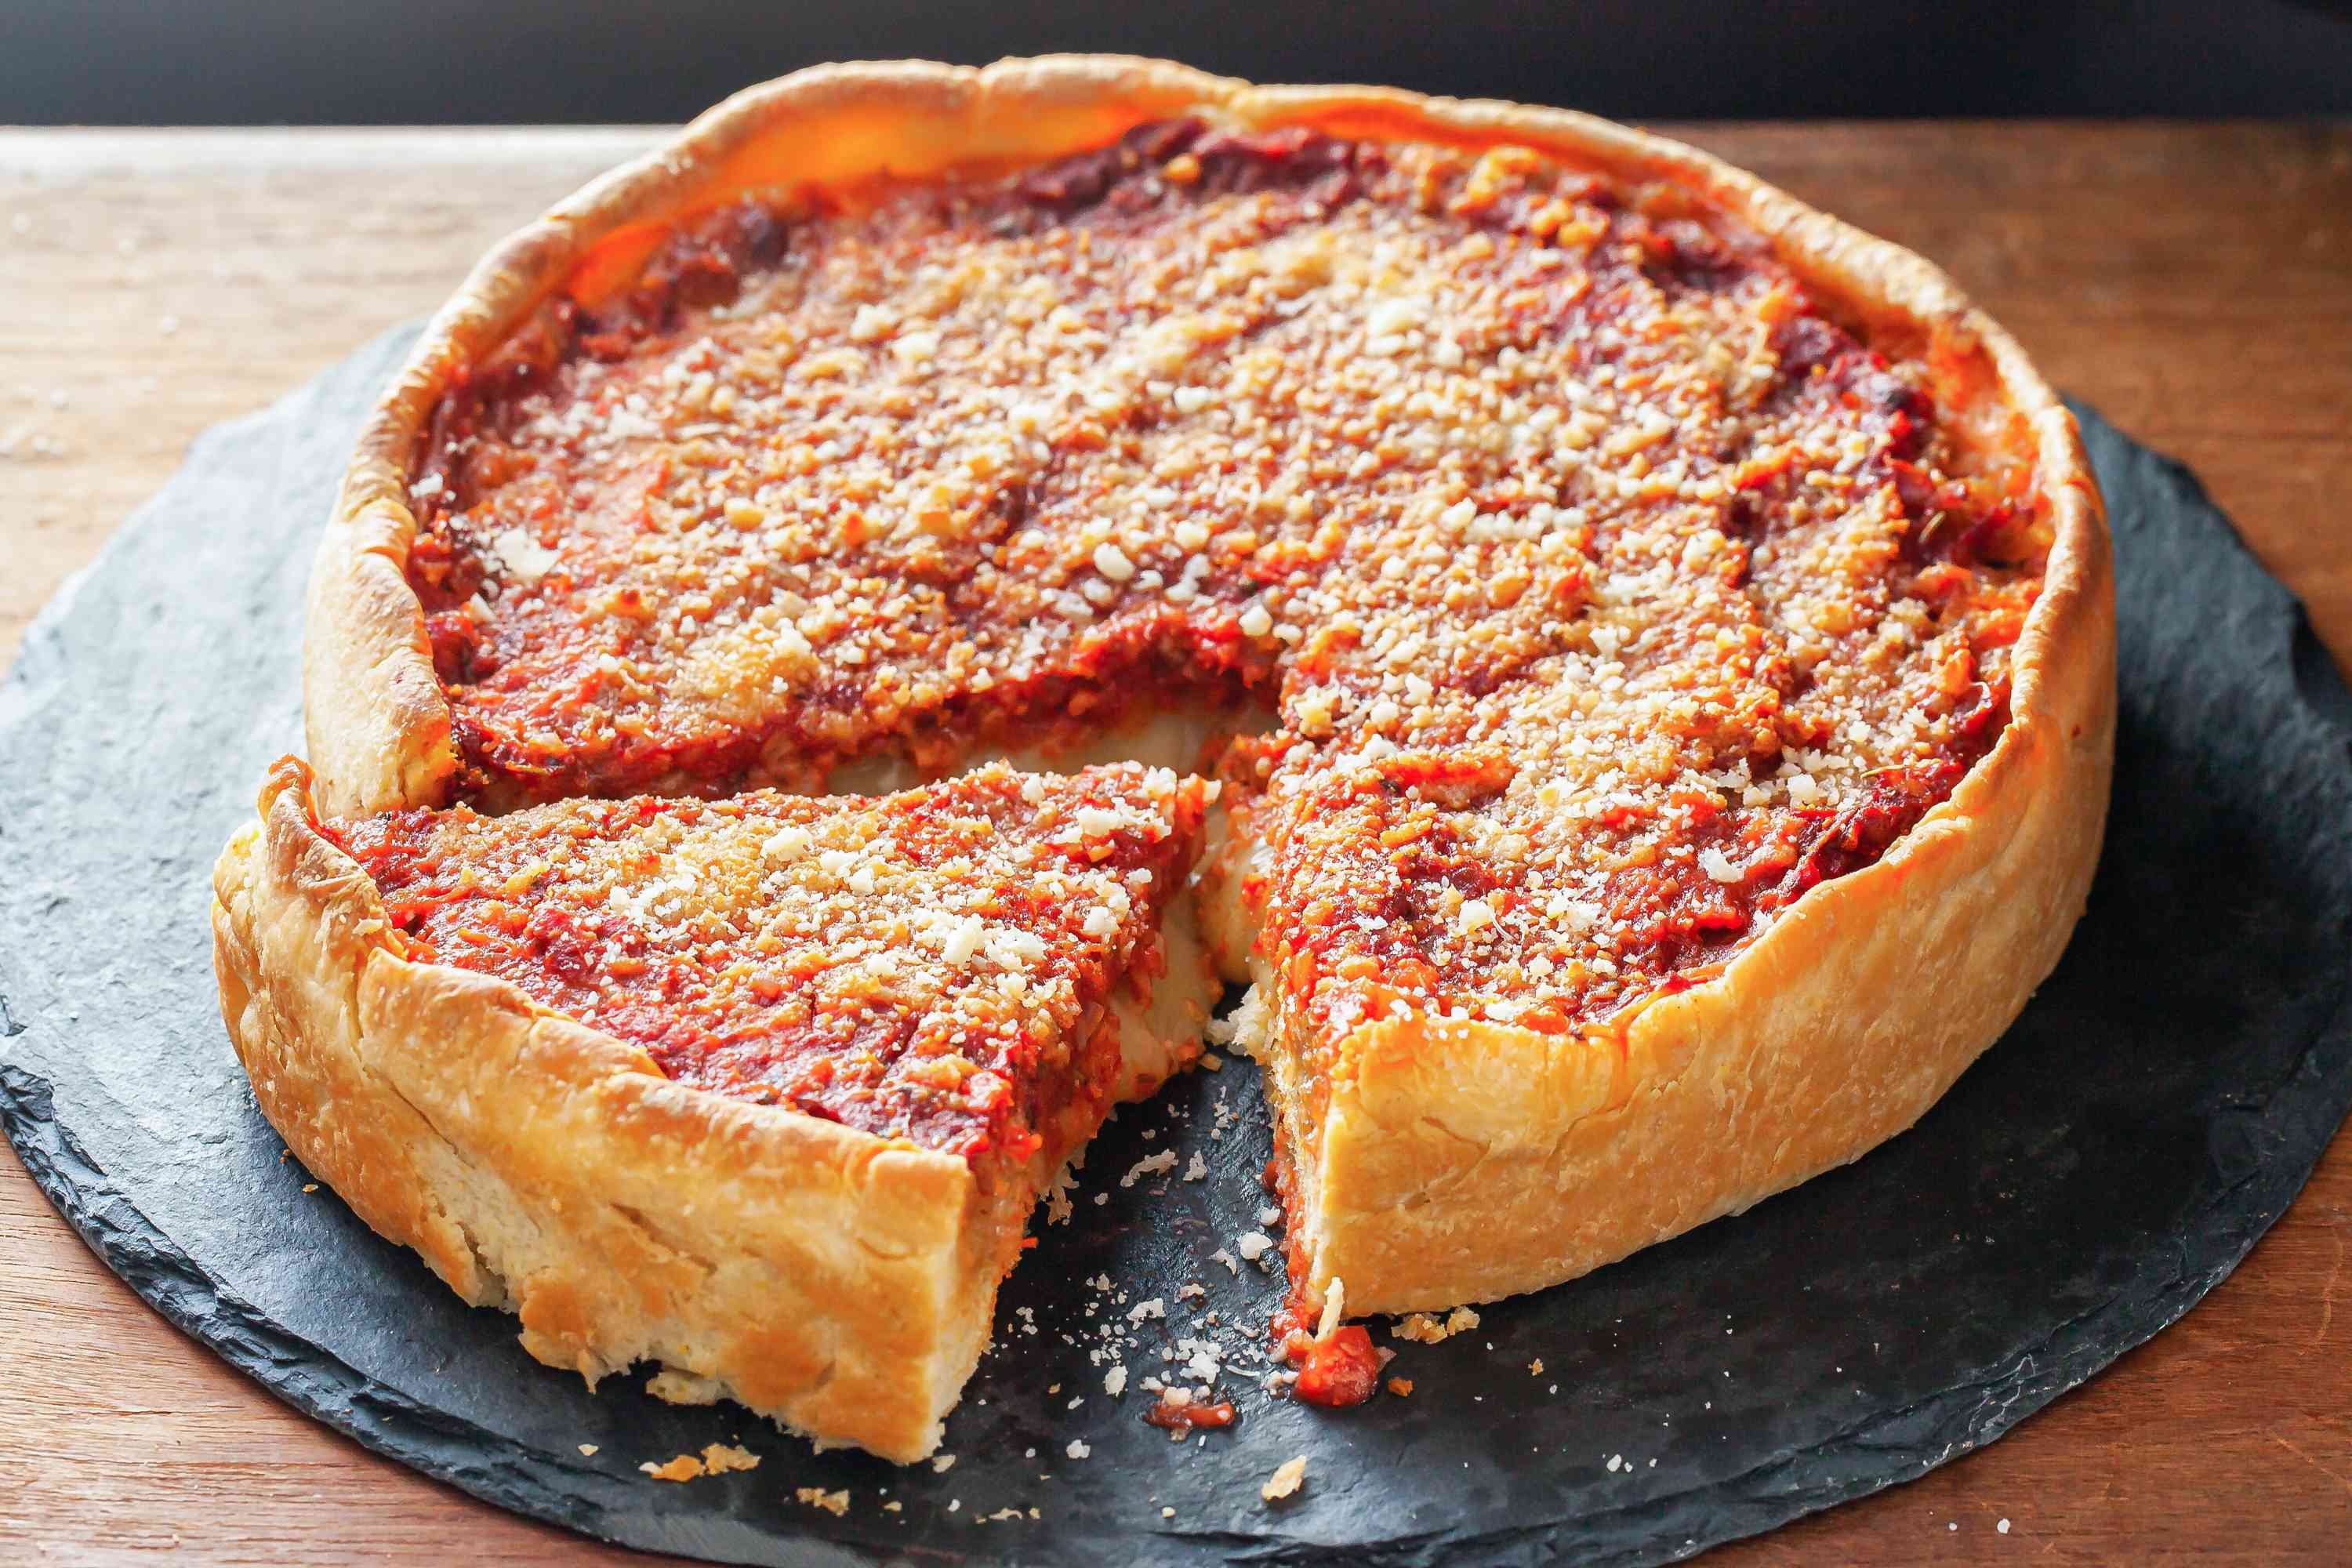 Homemade Chicago-Style Deep Dish Pizza